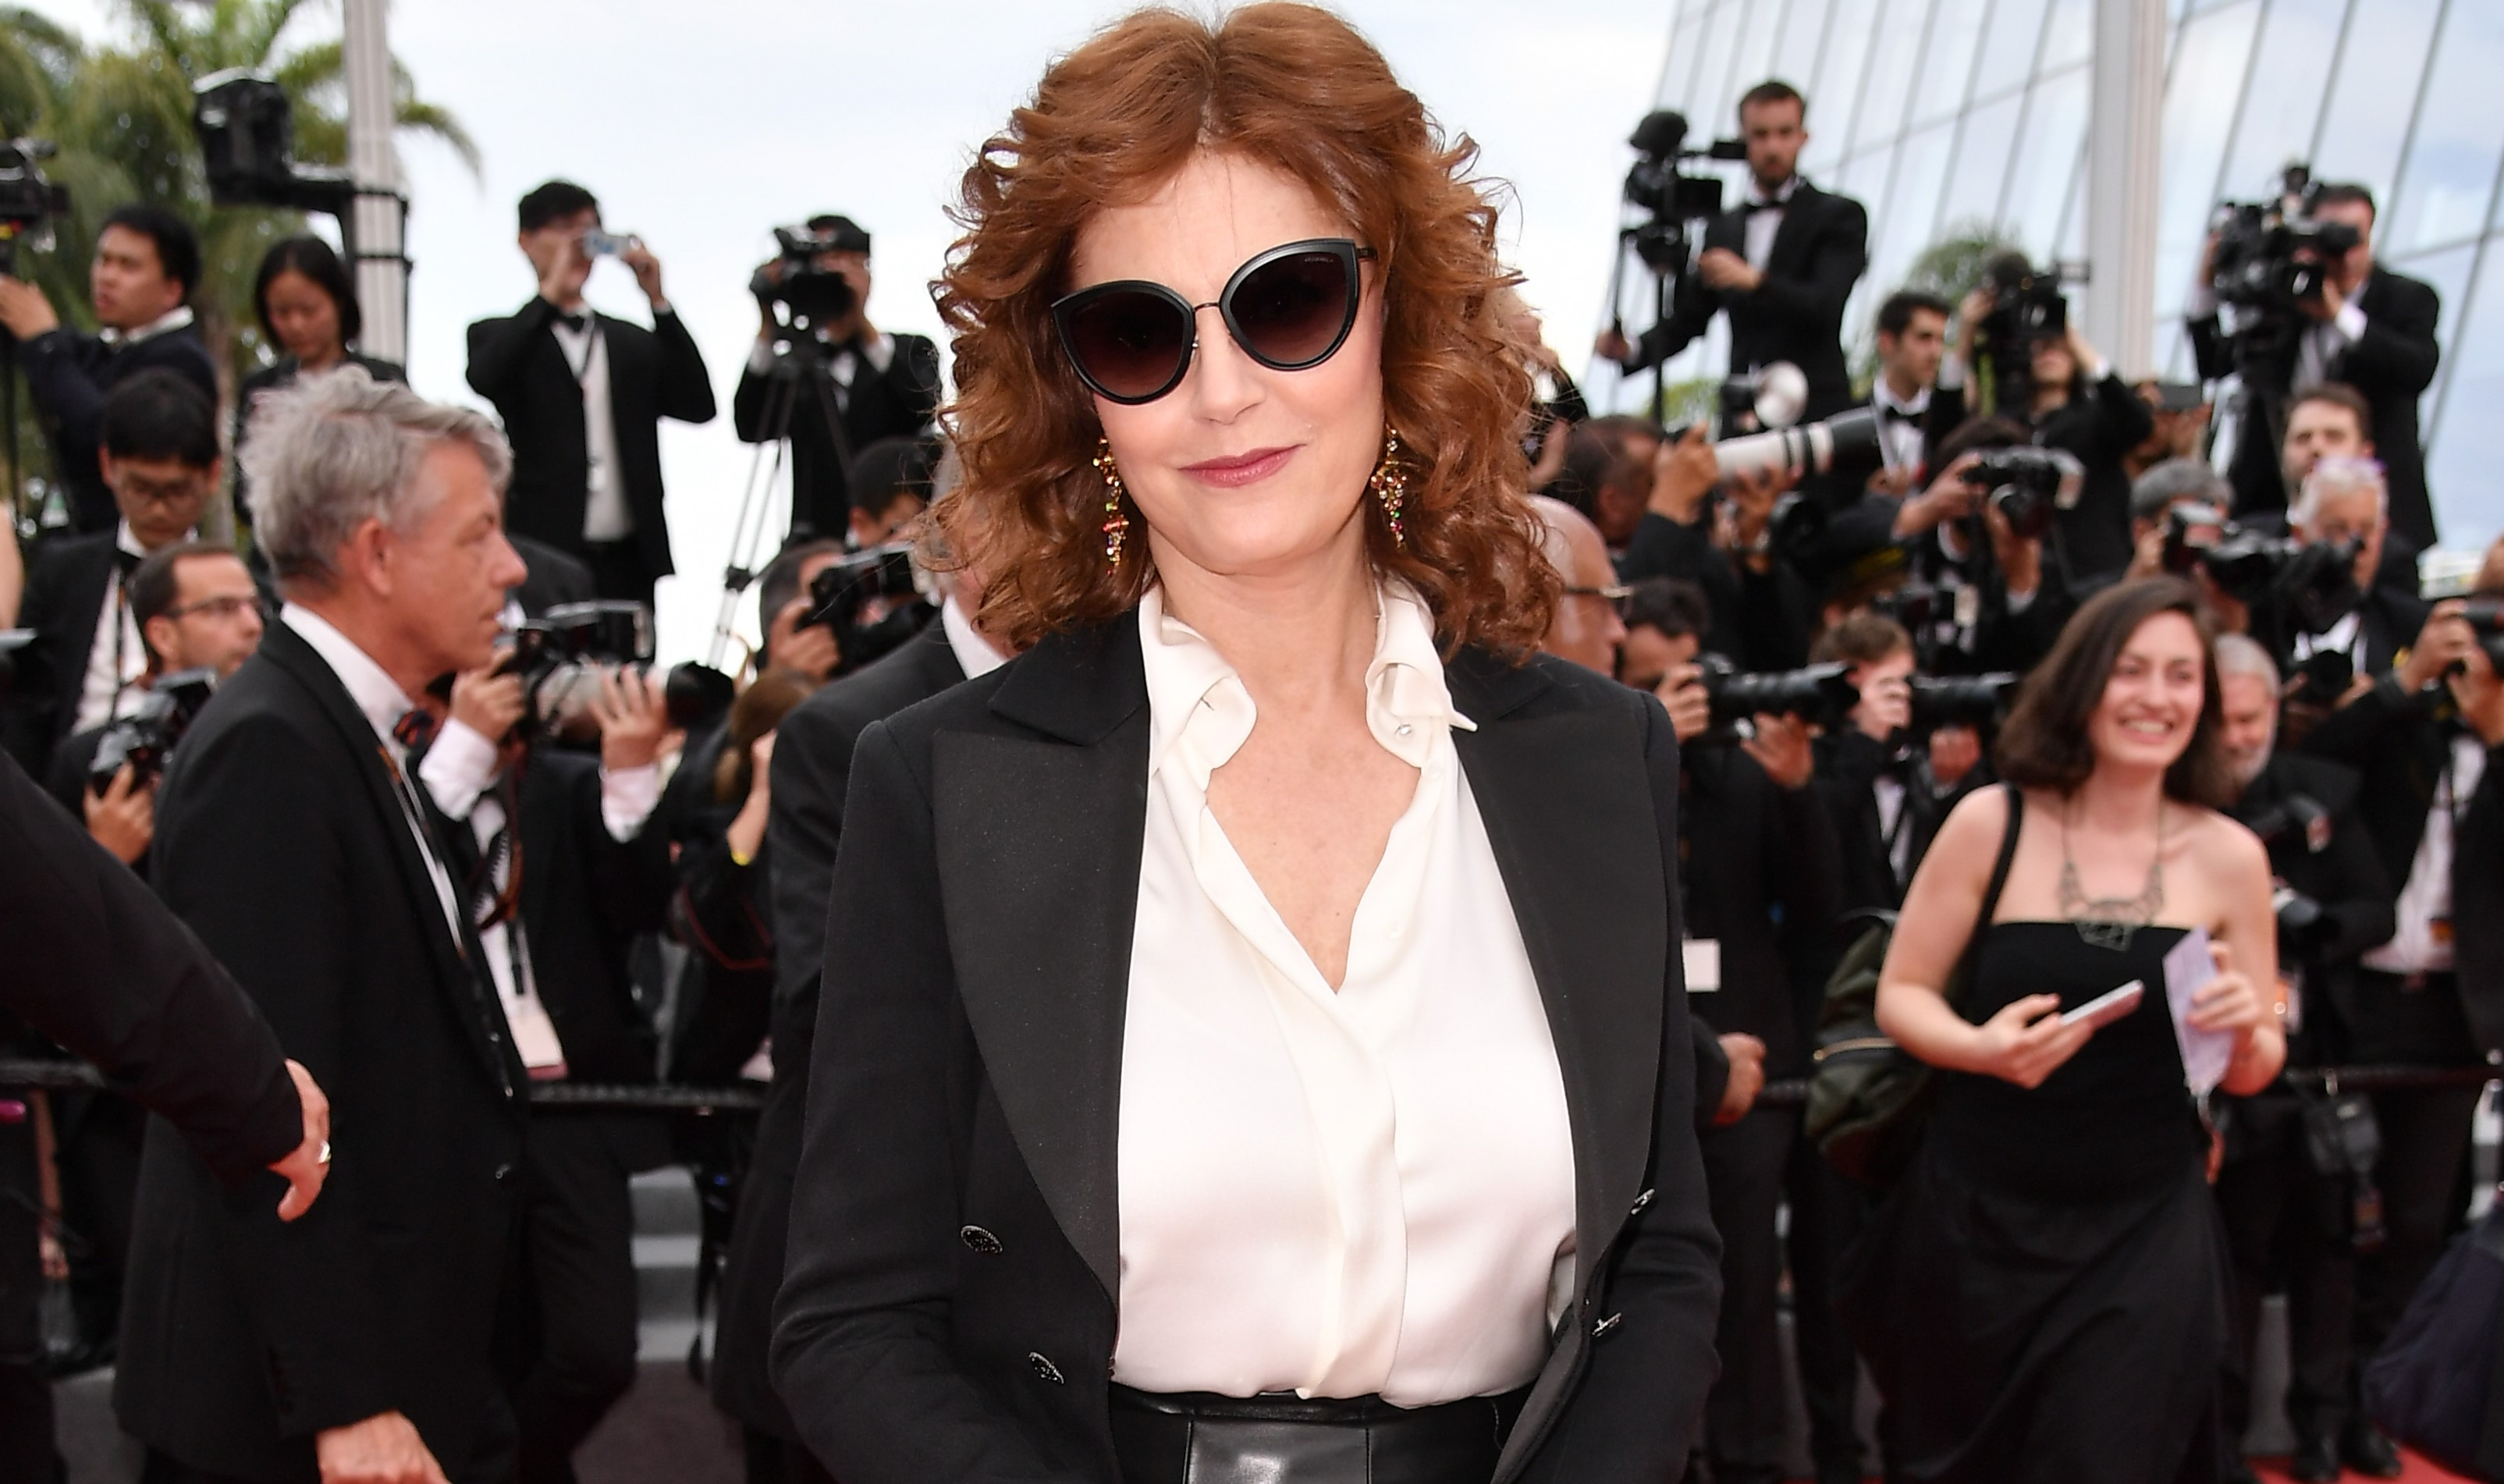 Susan Sarandon And Reese Witherspoon Praise Cara Delevingne For Sharing Weinstein Hotel Room Story